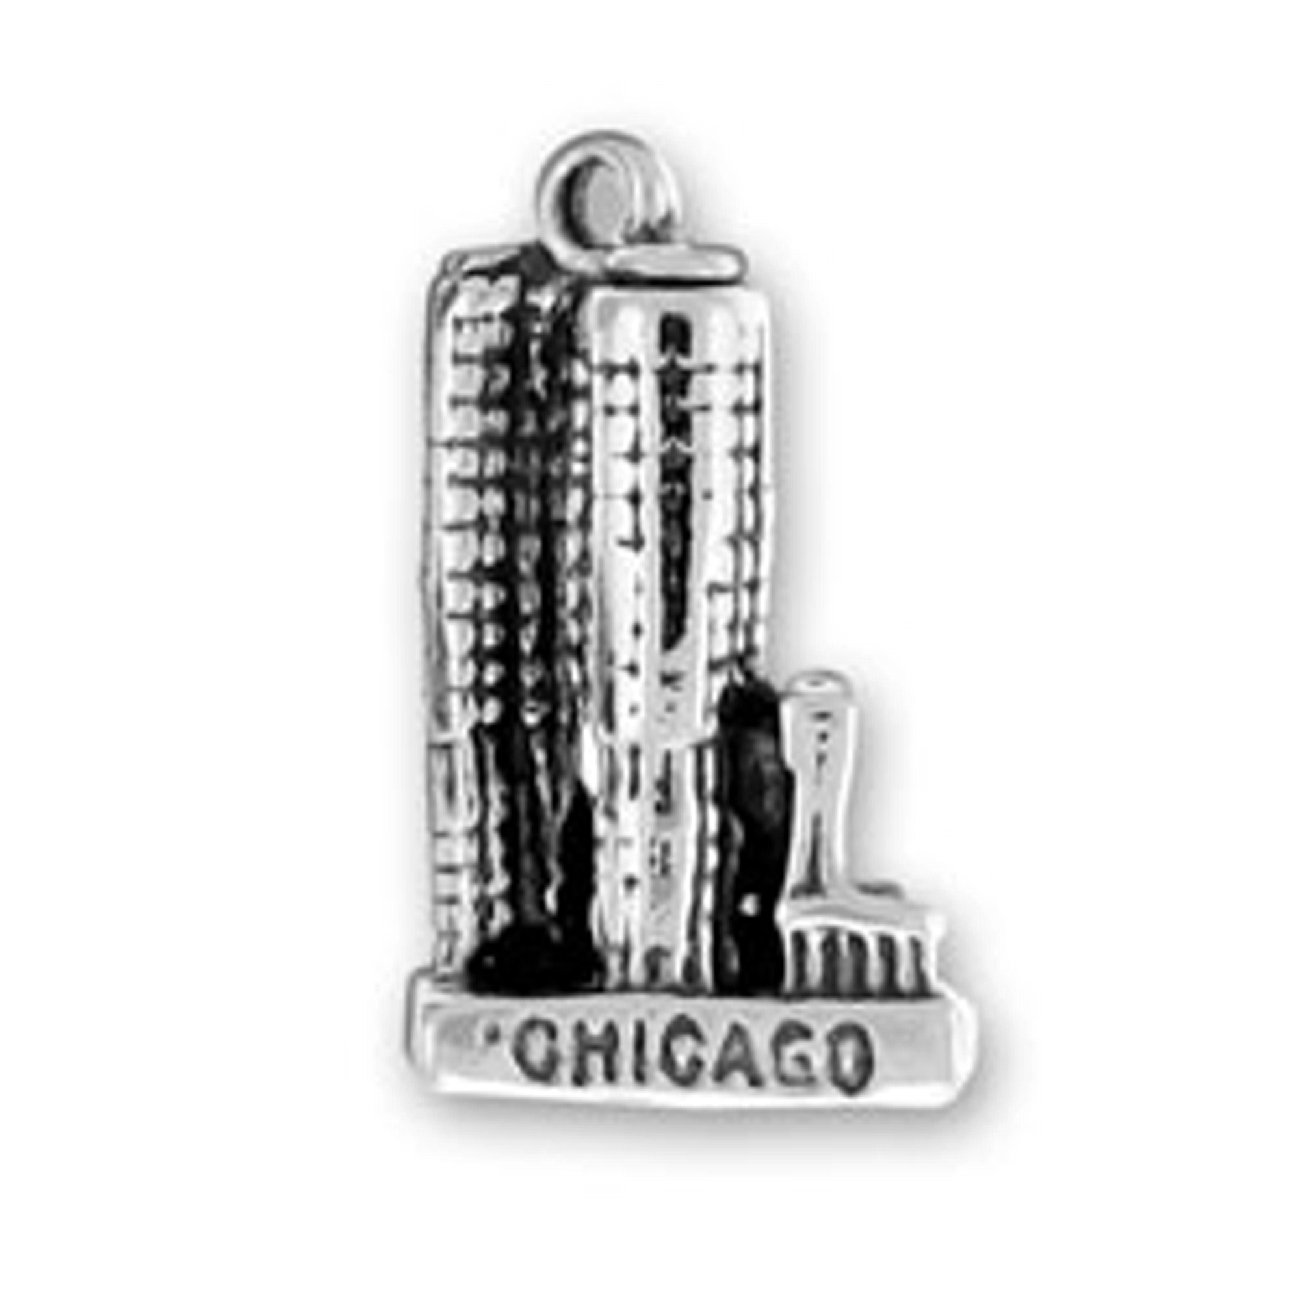 Sterling Silver 7 4.5mm Charm Bracelet With Attached 3D Chicago Marina City Charm